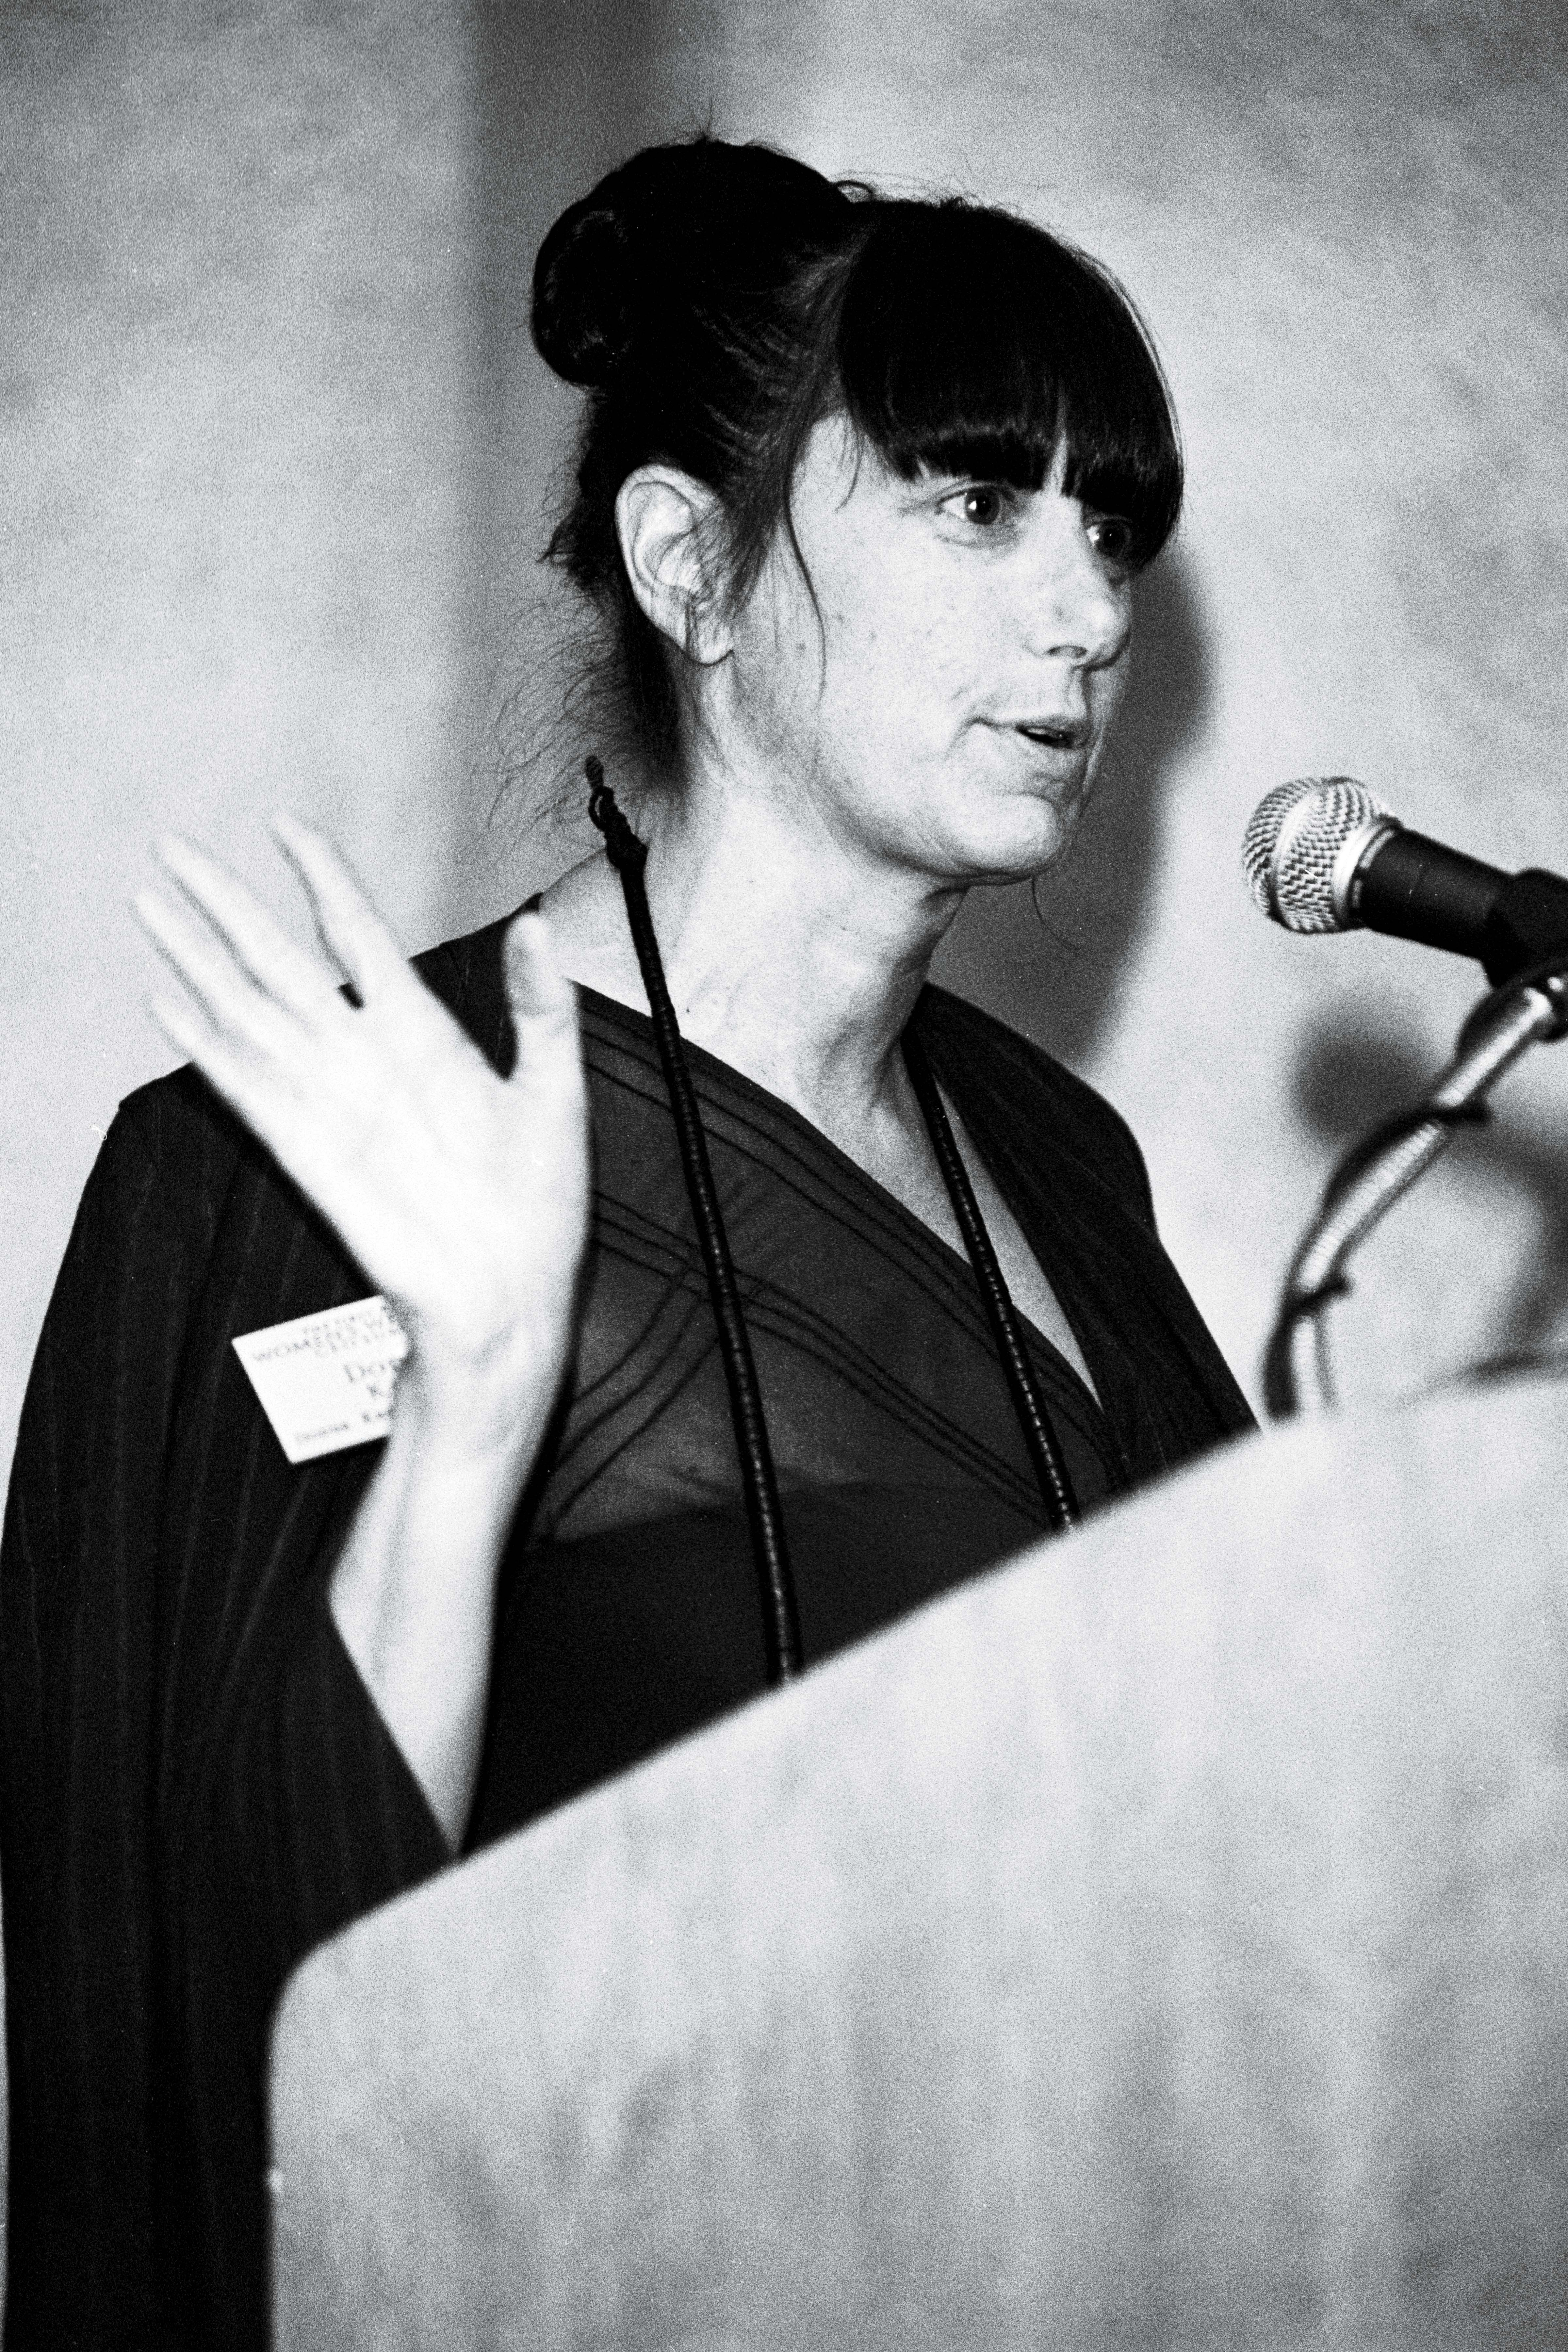 Donna Karan speaking at WWD's ceo summit in 1997.